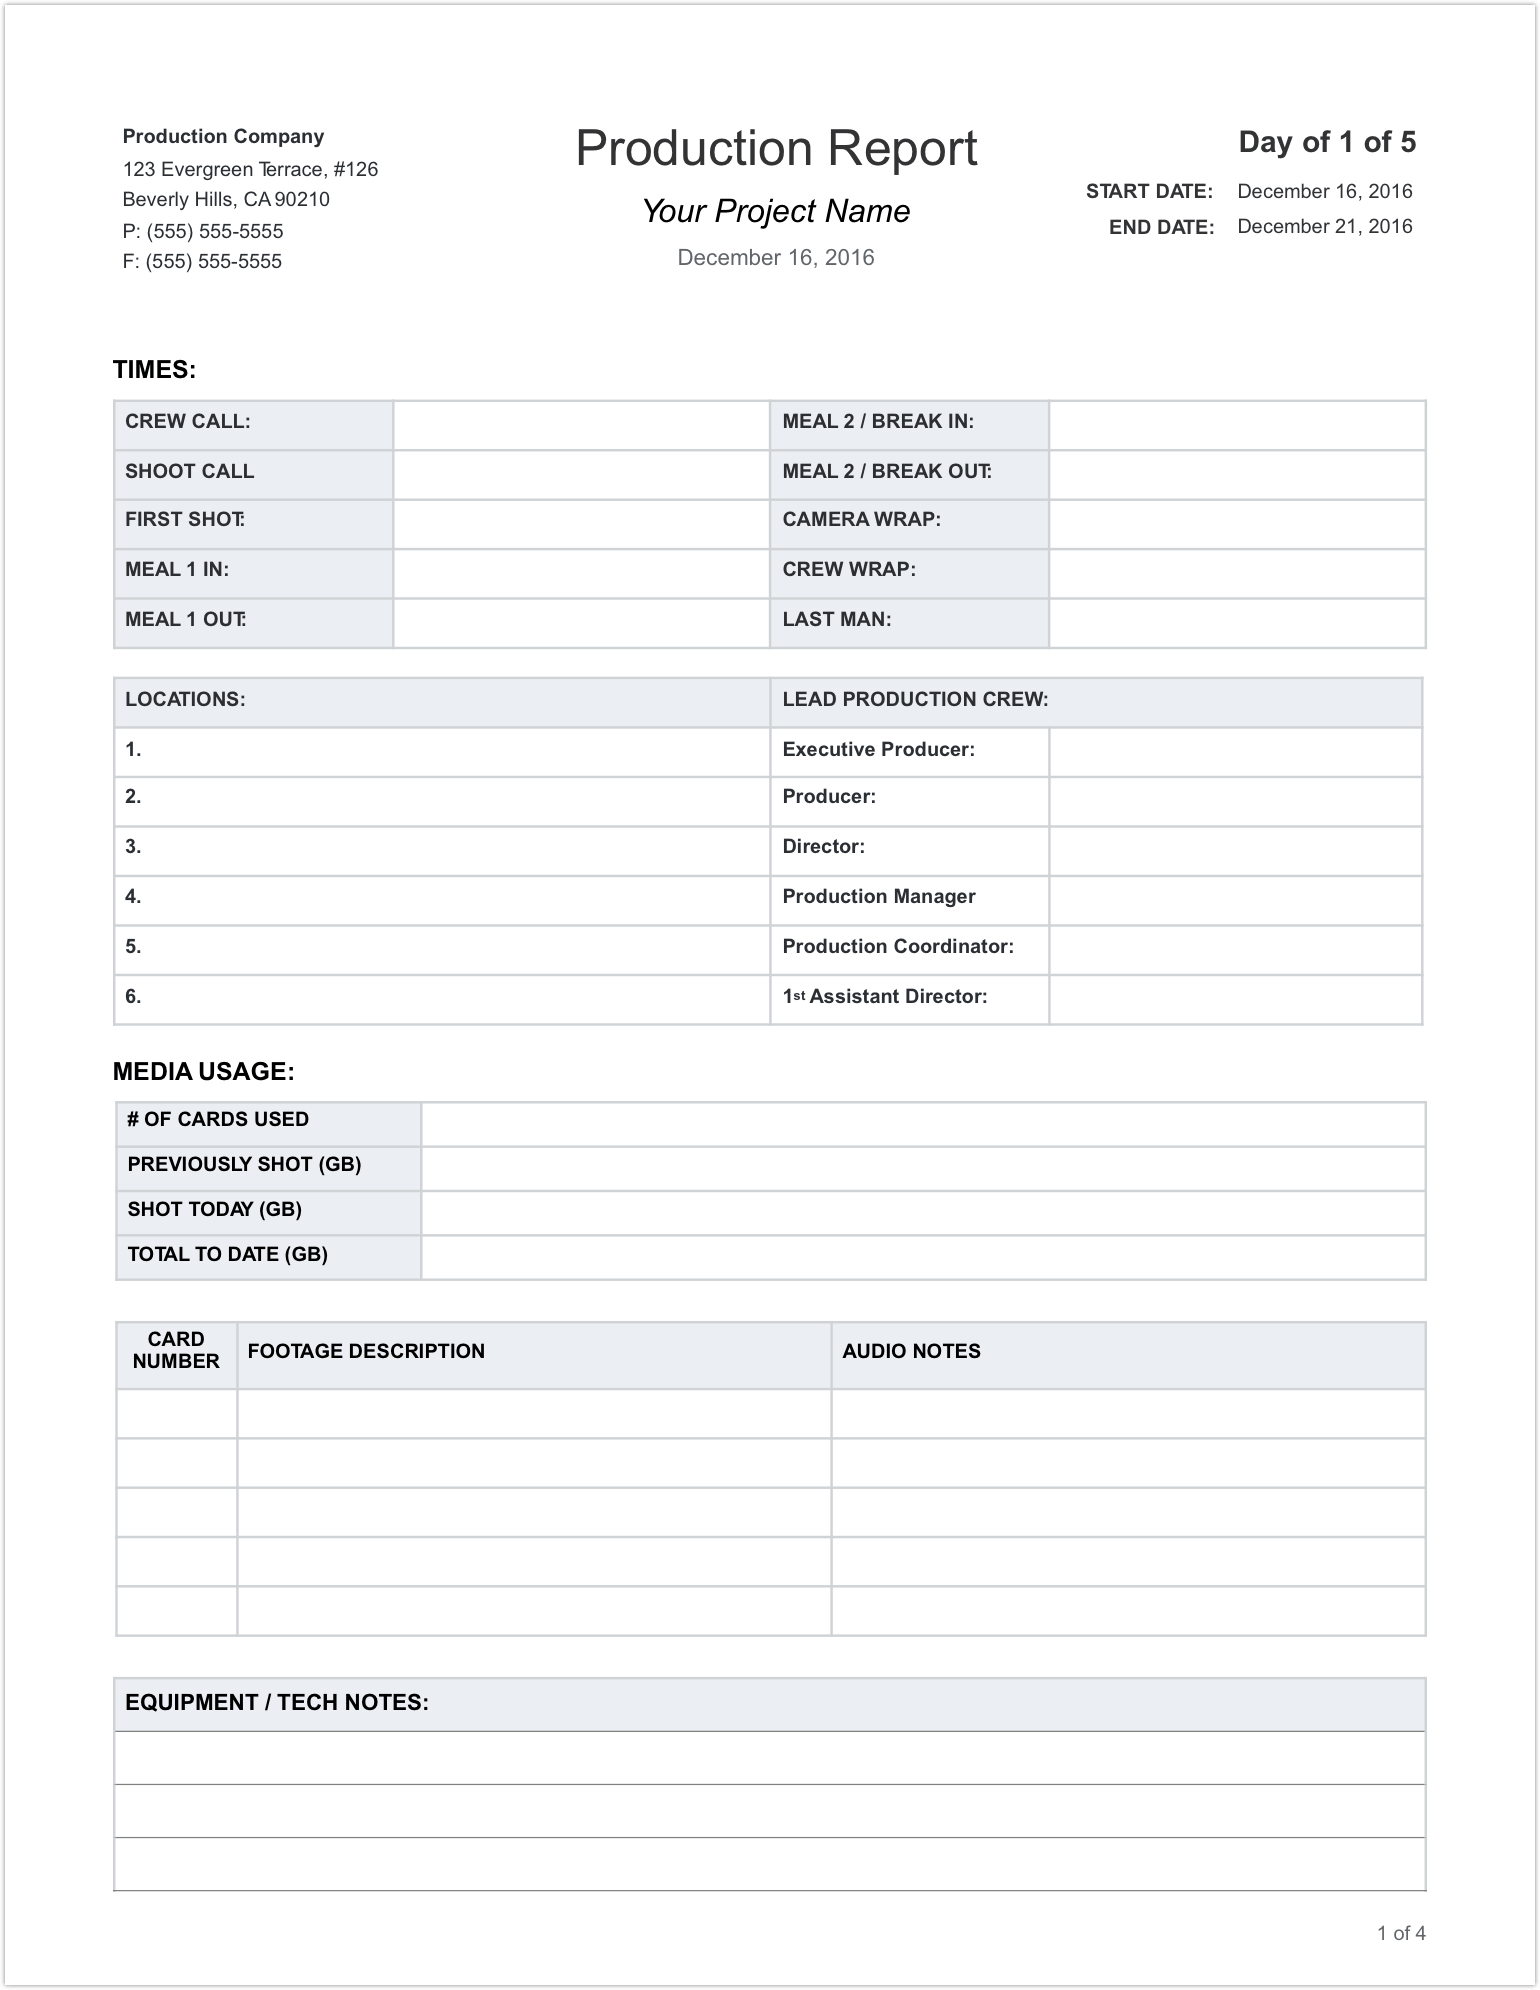 Daily Production Report Template - Page 1 - StudioBinder